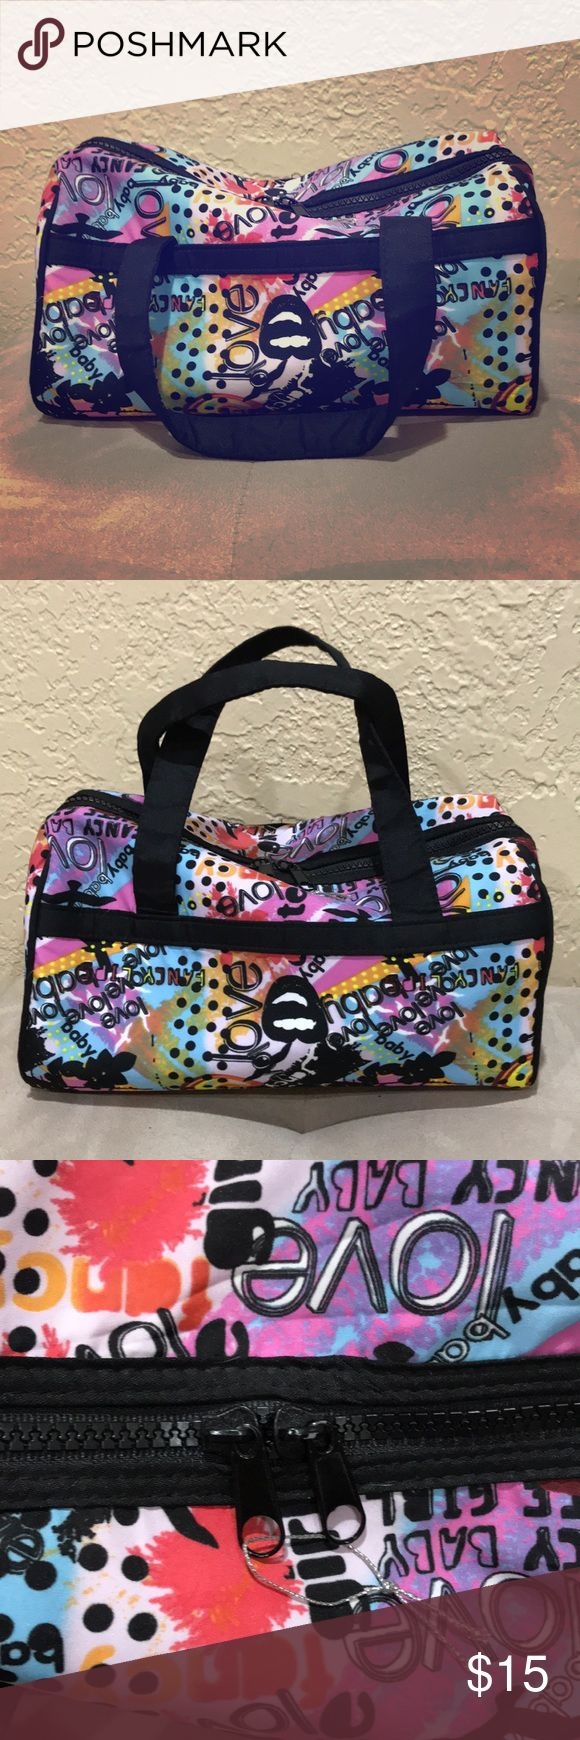 Large Travel Cosmetics Bag  This beautiful and vibrant large cosmetics bag has never been used. It is perfect for fitting all of your hair and makeup essentials for travel! 12 inches in length - this is not a duffel bag Bags Cosmetic Bags & Cases #travelessentials